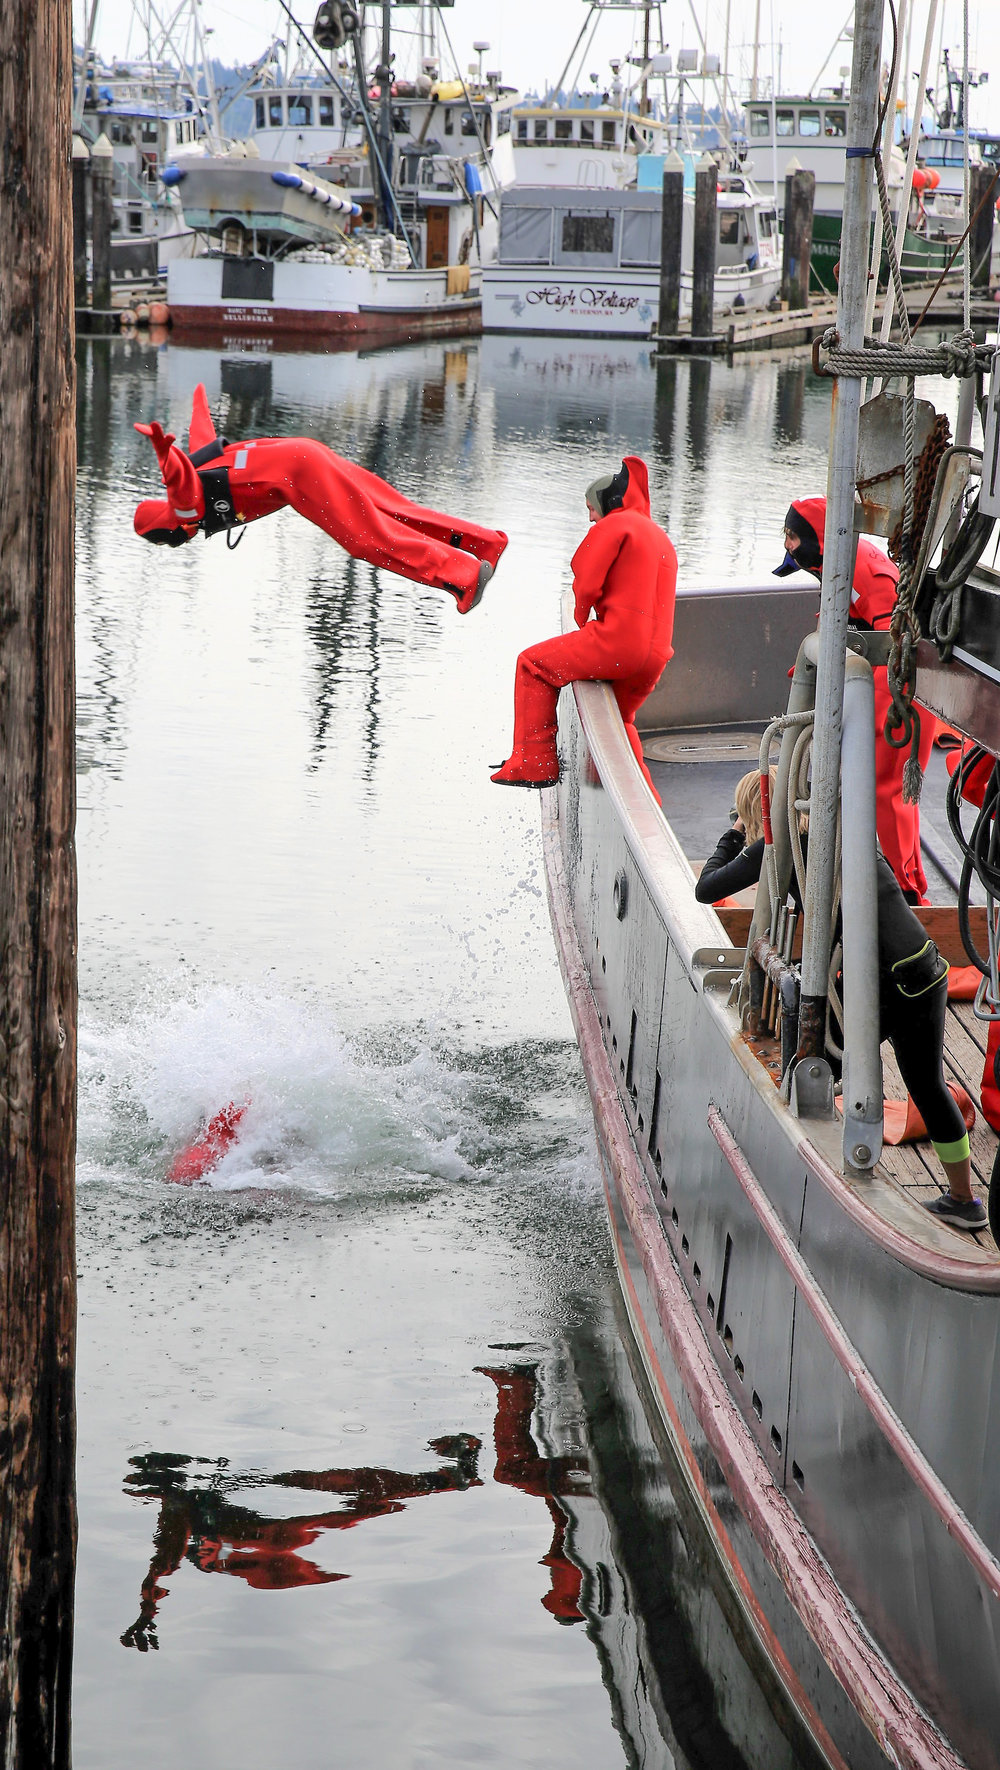 Fisherman dives into Bellingham Bay at the Annual Bellingham SeaFeast